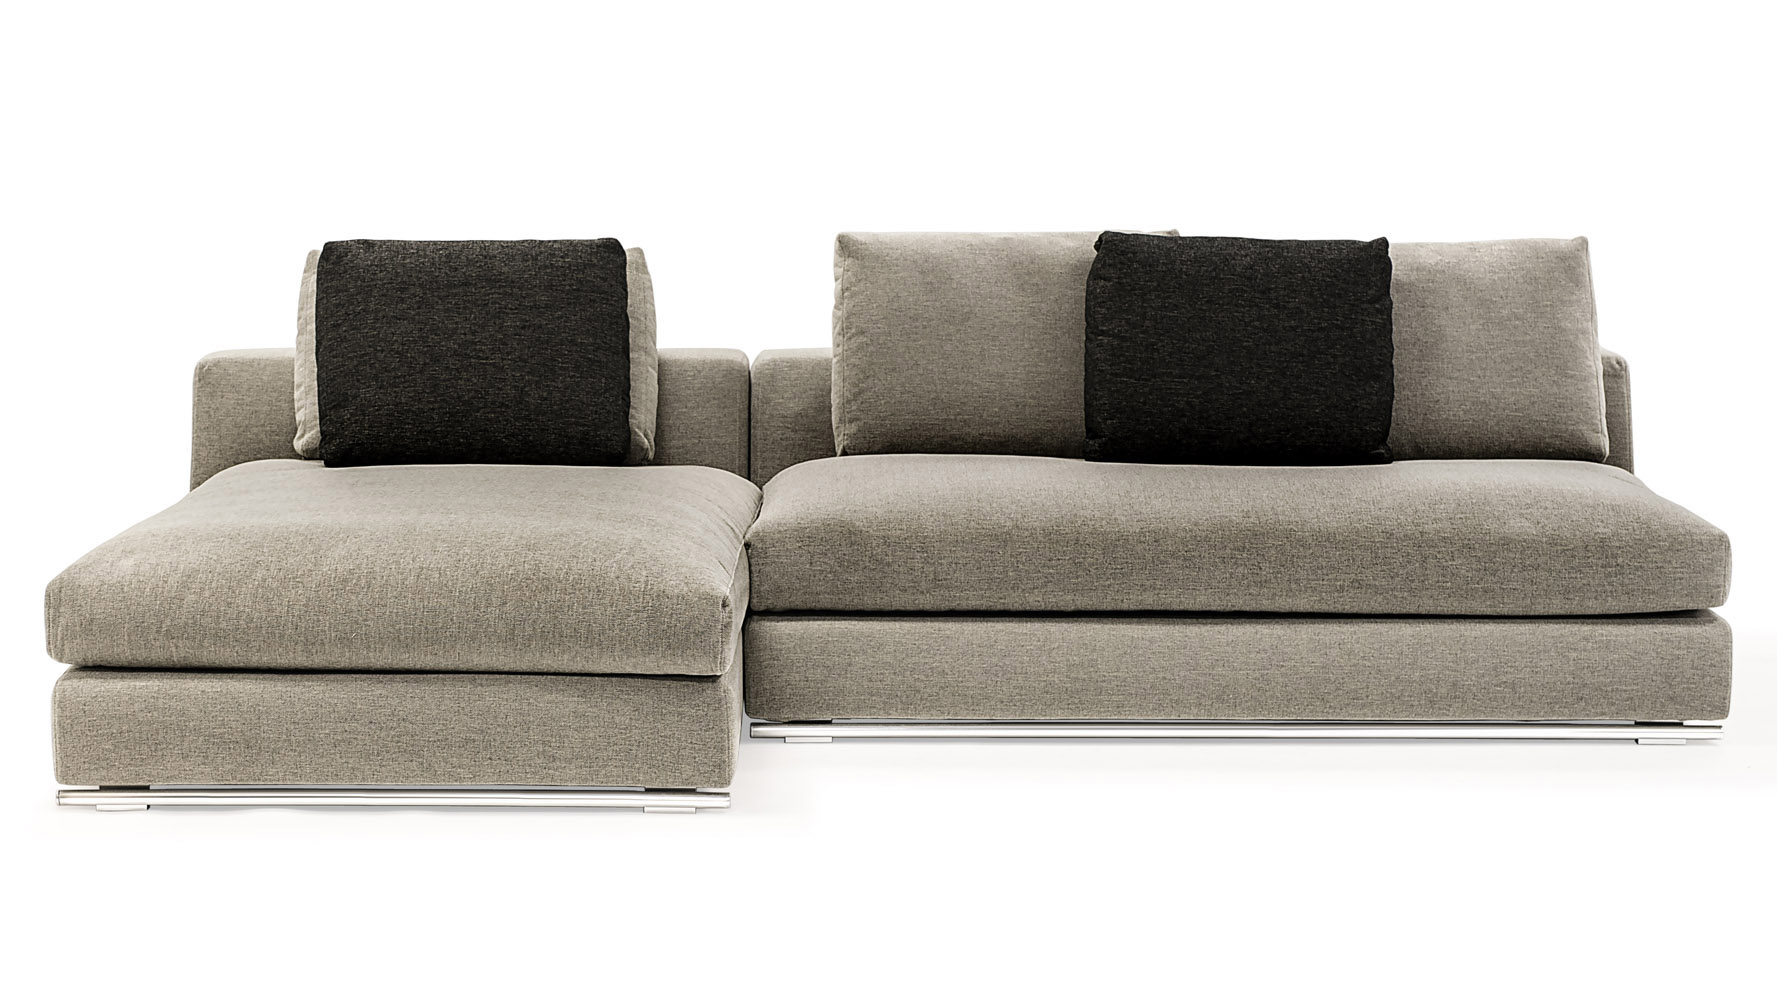 2 Seater Sofa With Chaise Furniture Sofa Sectionals Chaise